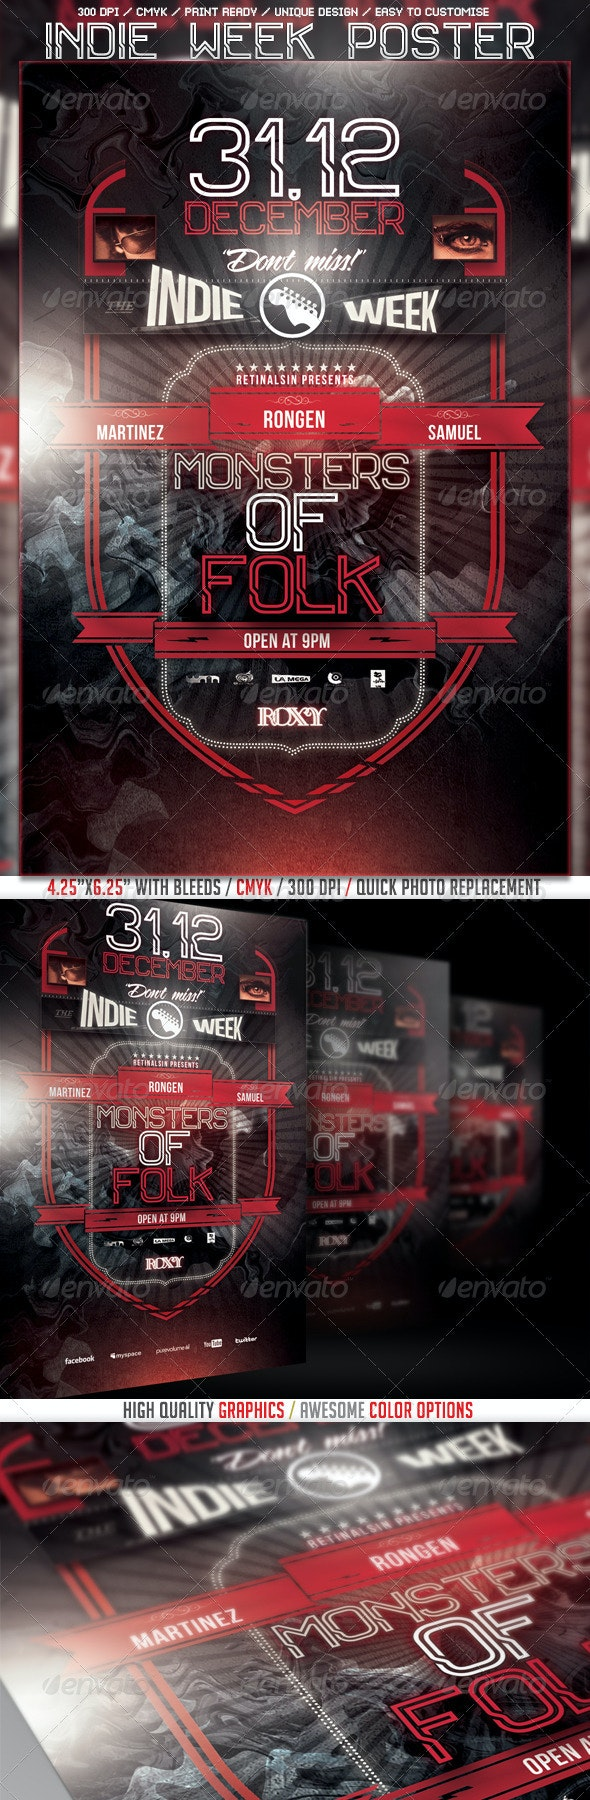 Indie Week Poster/Flyer Template - Events Flyers